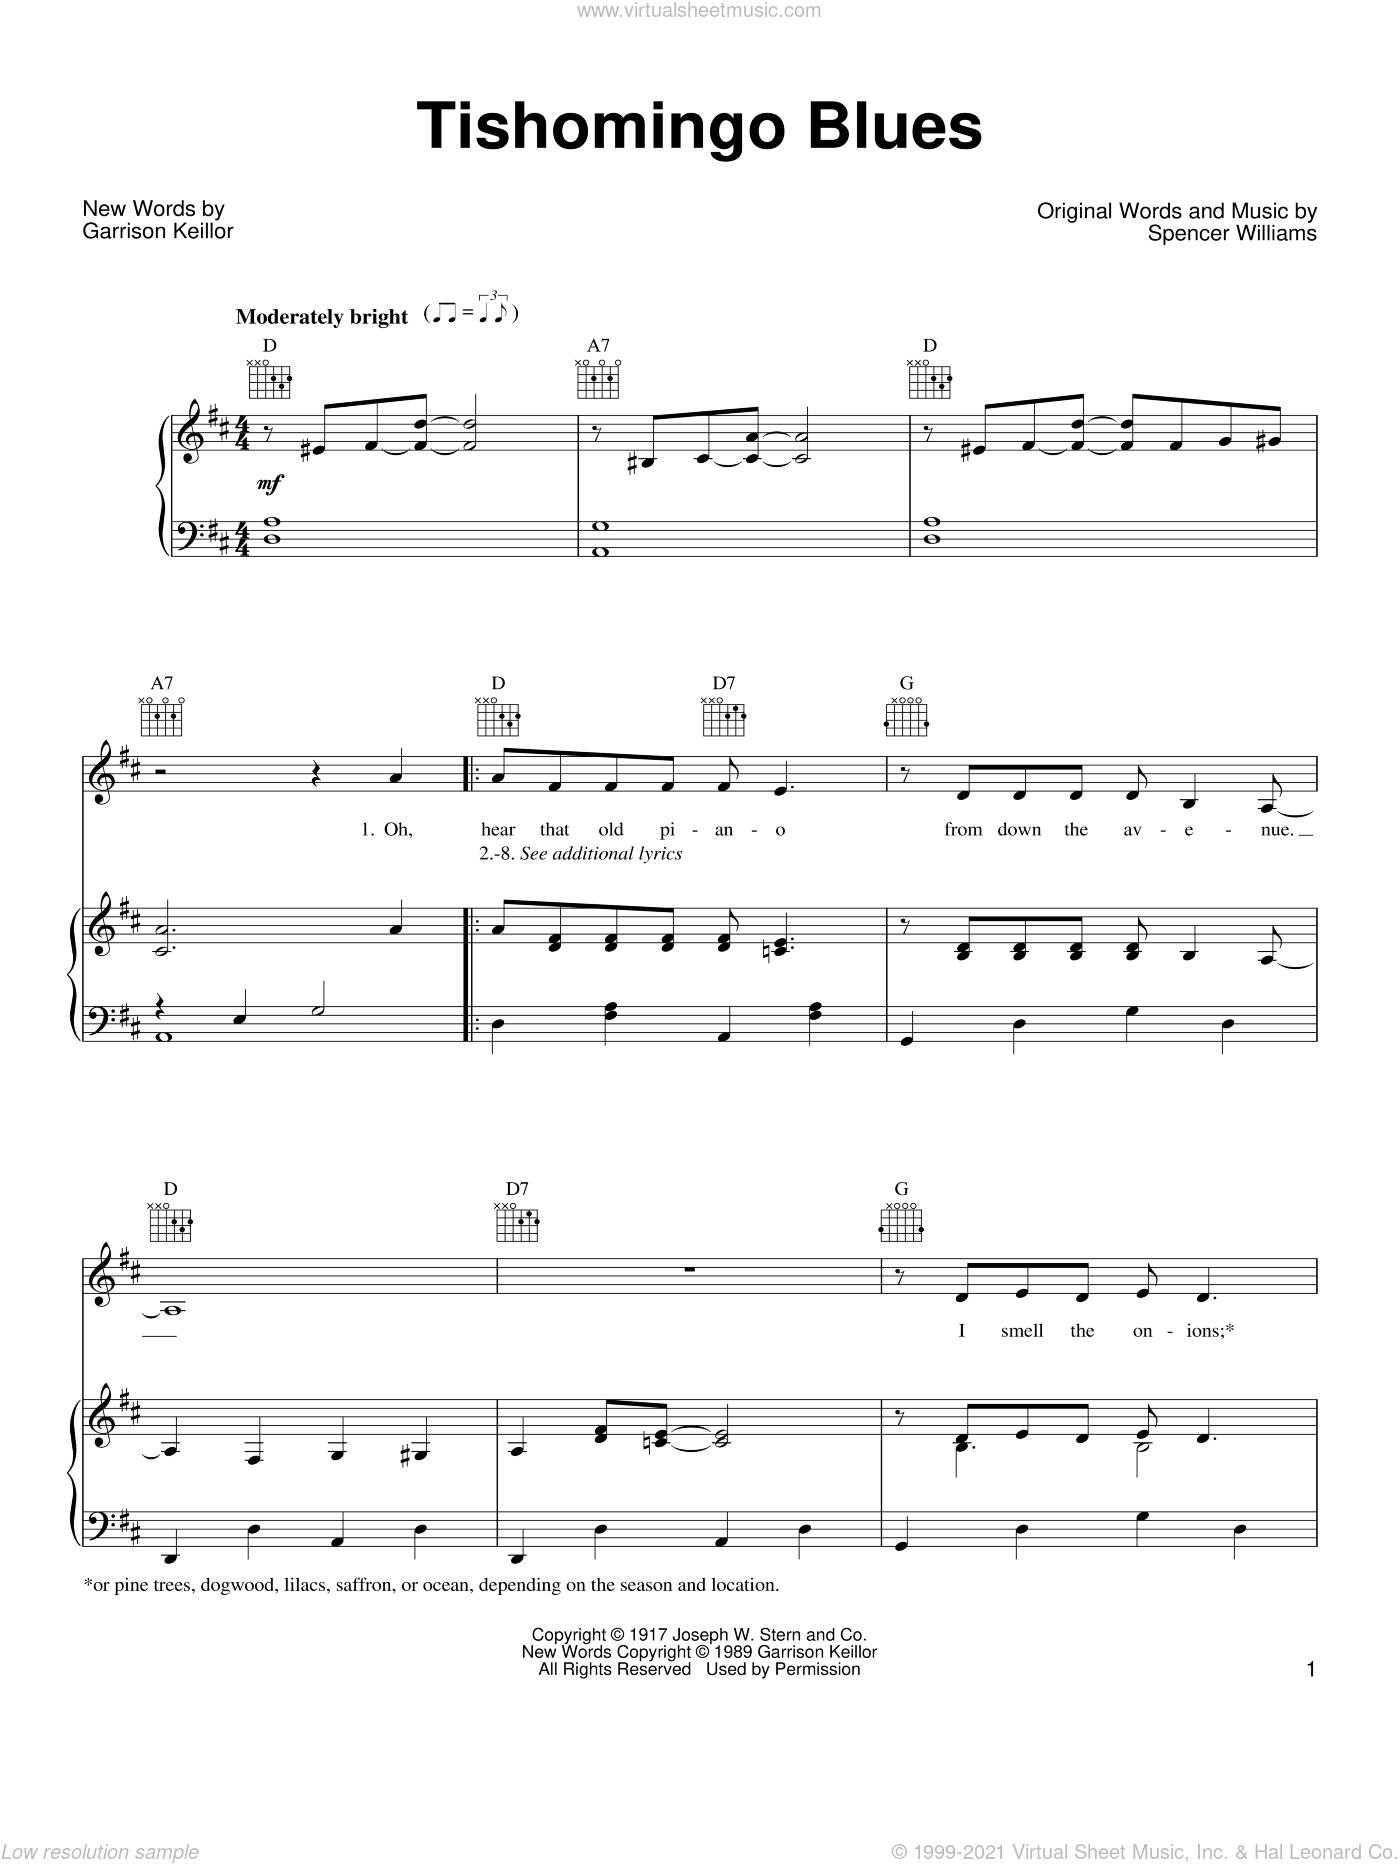 Tishomingo Blues sheet music for voice, piano or guitar by Garrison Keillor and Spencer Williams. Score Image Preview.